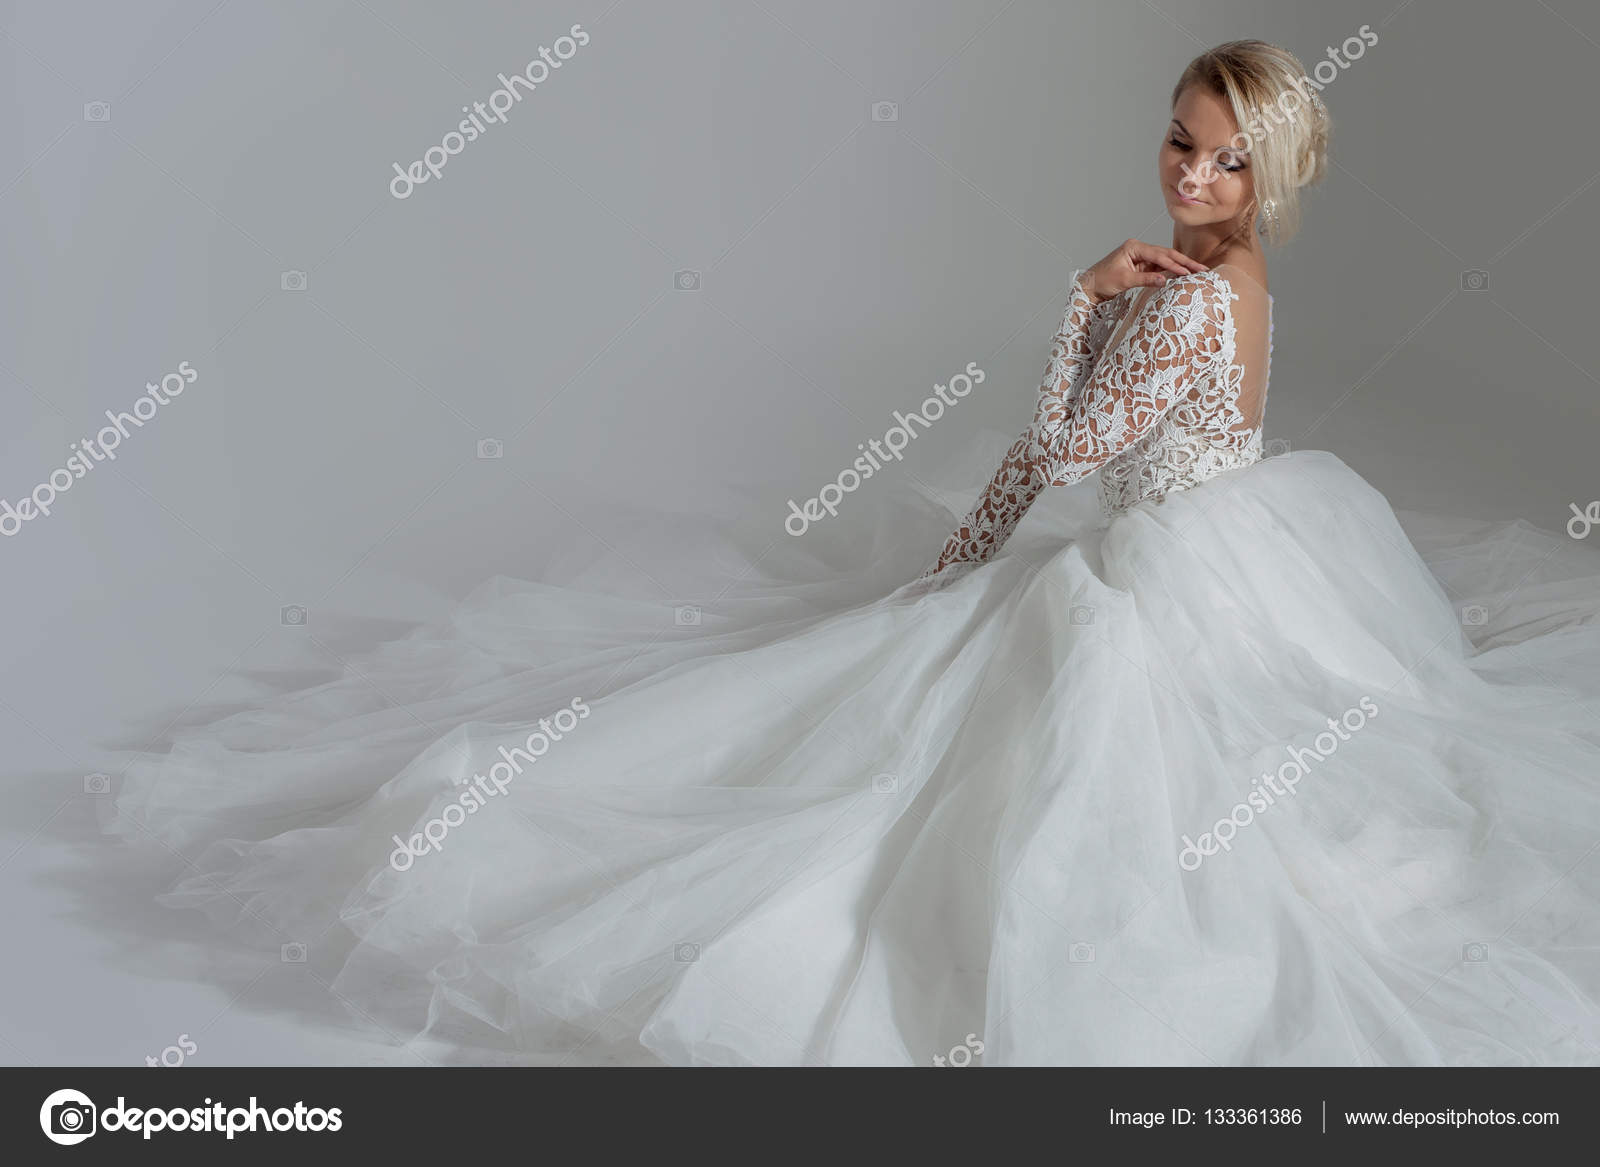 Beautiful Bride In Luxurious Wedding Dress Sitting Circle Long Skirts White Background Top View– Stock Image: Haute Couture Wedding Dress Sitting At Reisefeber.org